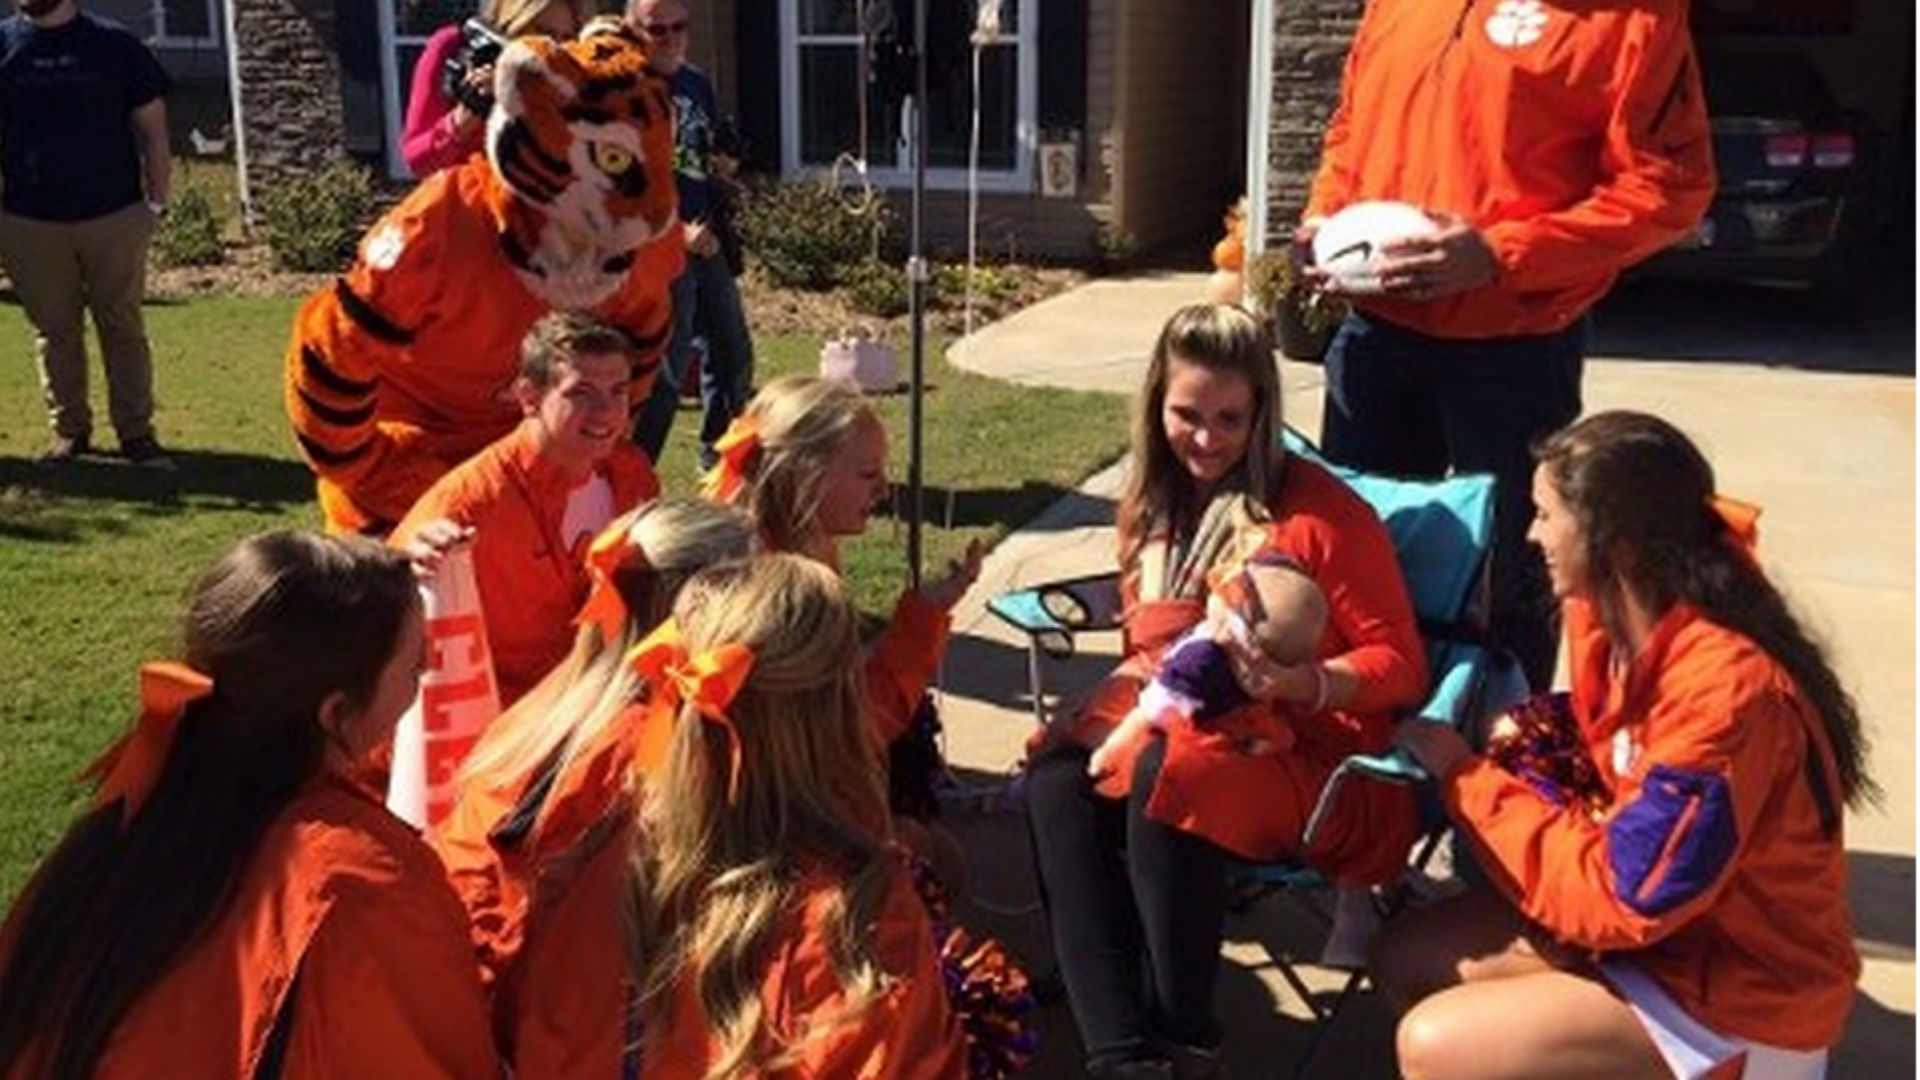 clemson-rally-10202015-US-News-WYFF-FTR